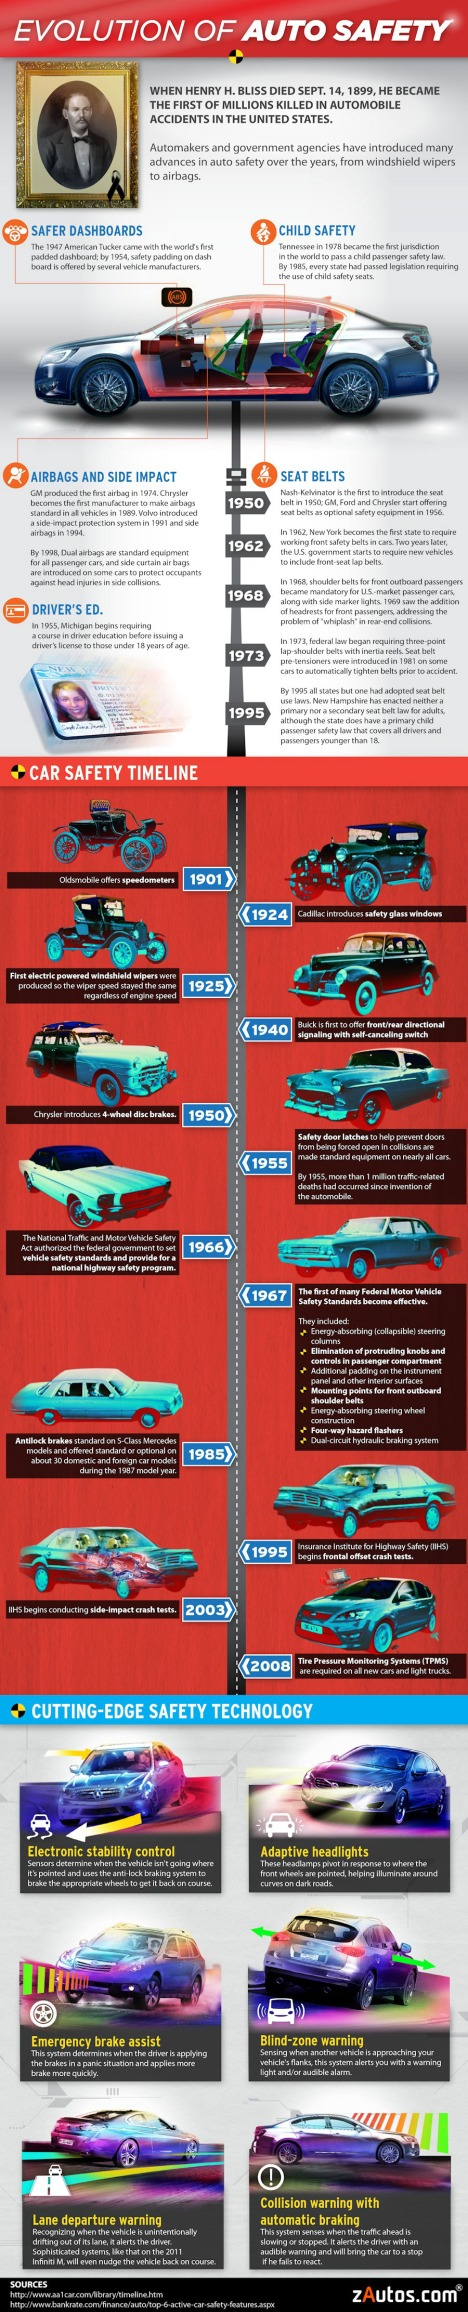 Evolution-Of-Auto-Safety